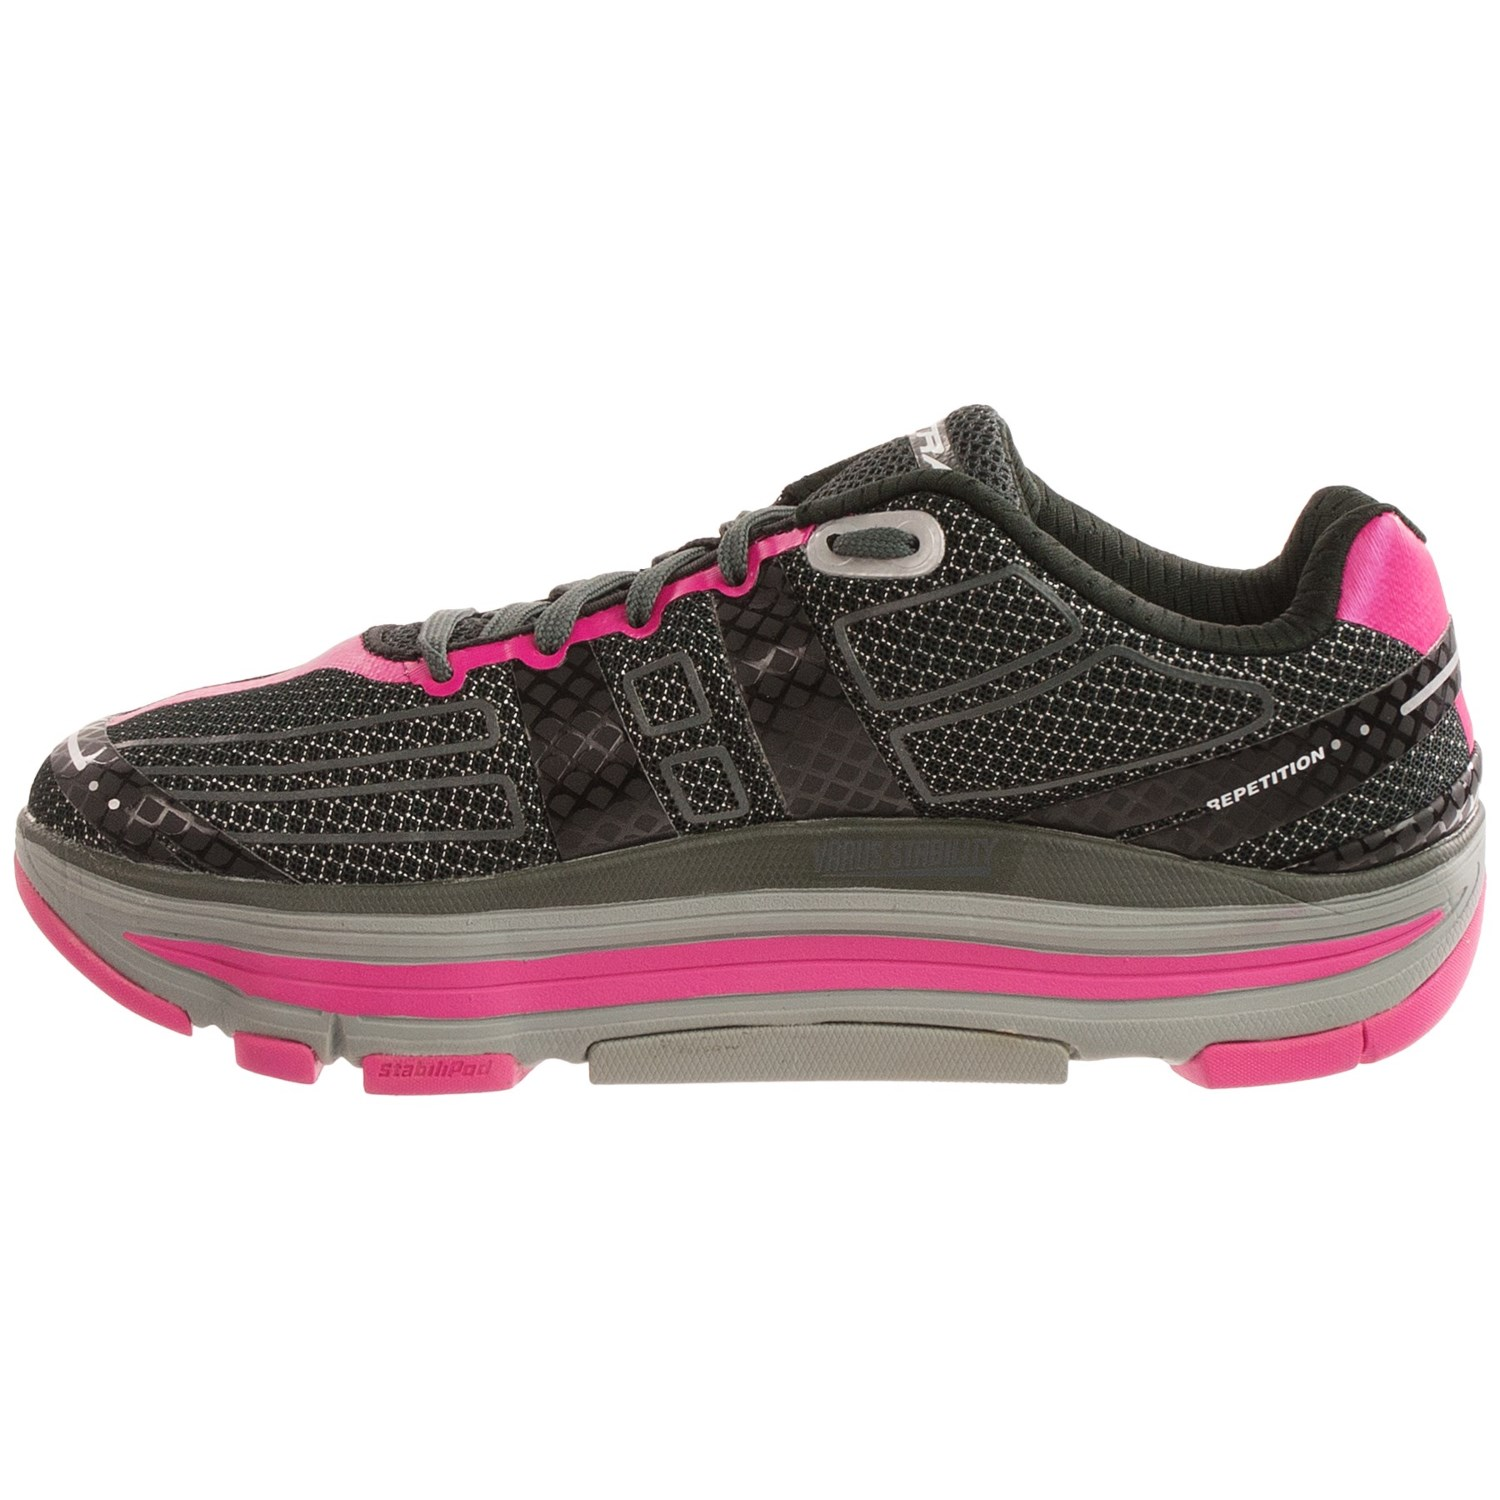 Columbia Running Shoes In Myrtle Beach